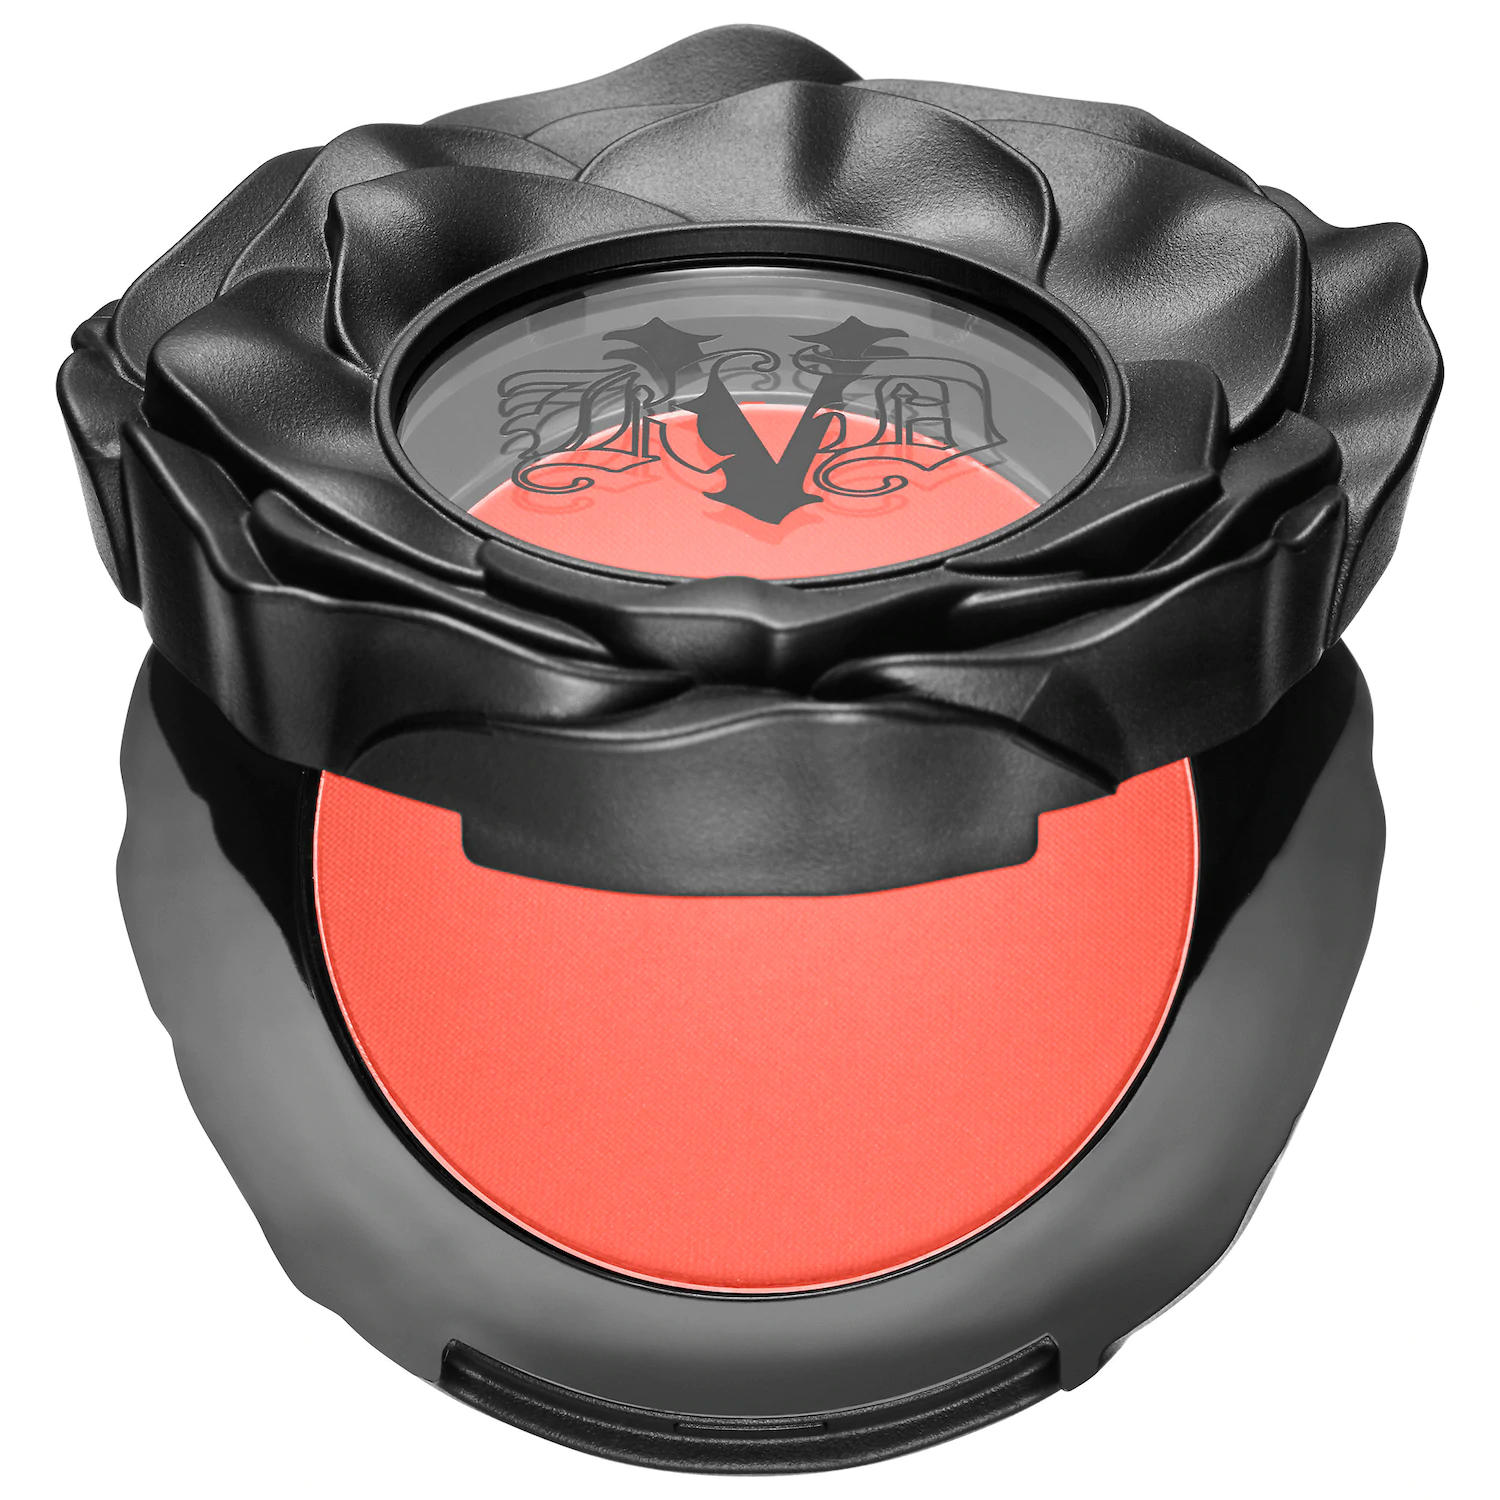 Kat Von D Everlasting Blush Poppy